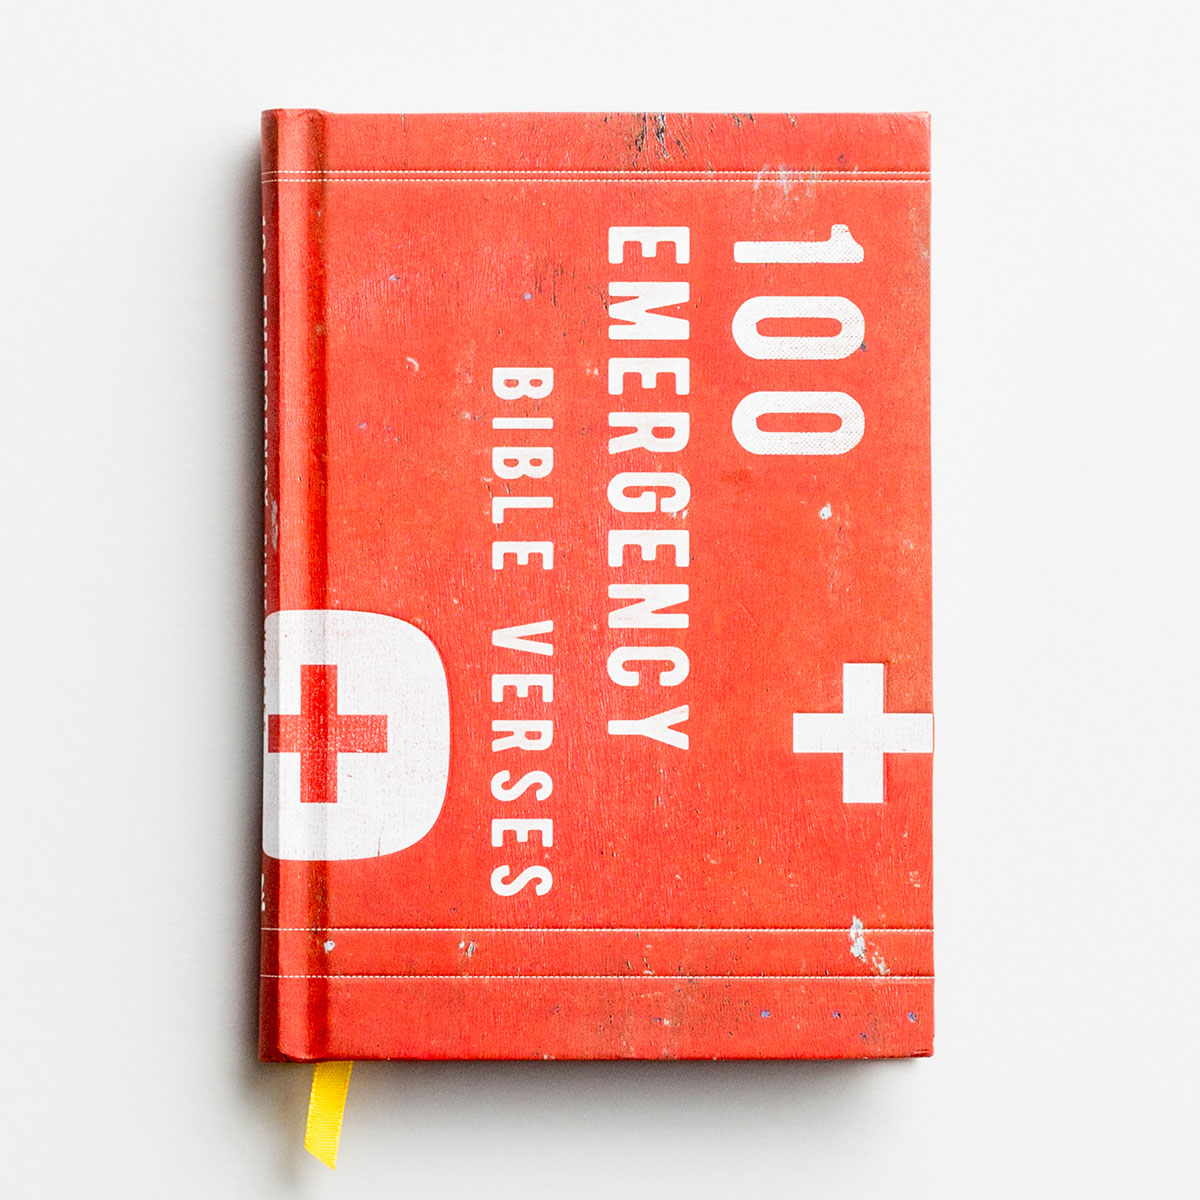 100 Emergency Bible Verses - Devotional Gift Book